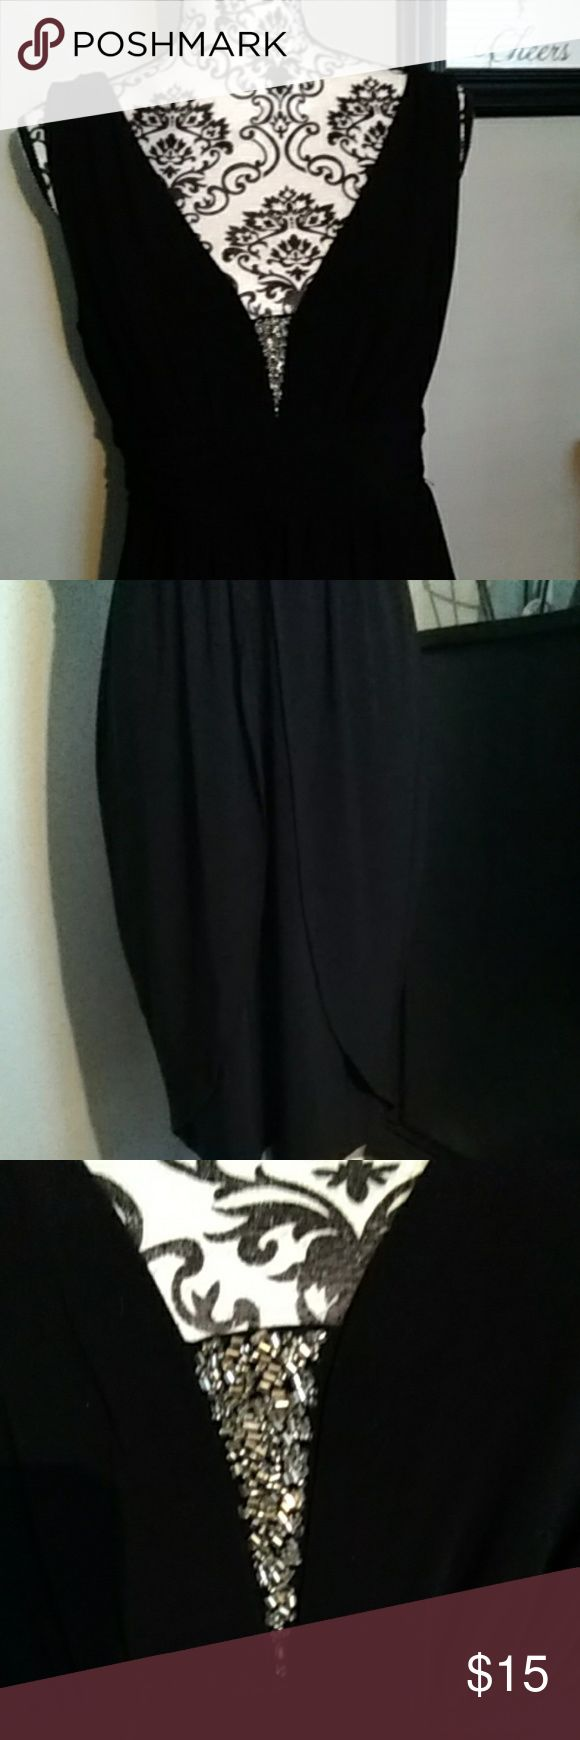 """Formal dress Elegant black dress with deep V front and back. Silver beads detail on the front. Pretty and flattering tulip skirt. Gathered band at the empire waist.bodice is fully lined. Very comfortable.  Worn once to a wedding. About 30"""" from arm pit to hem. Dress Barn Dresses Wedding"""